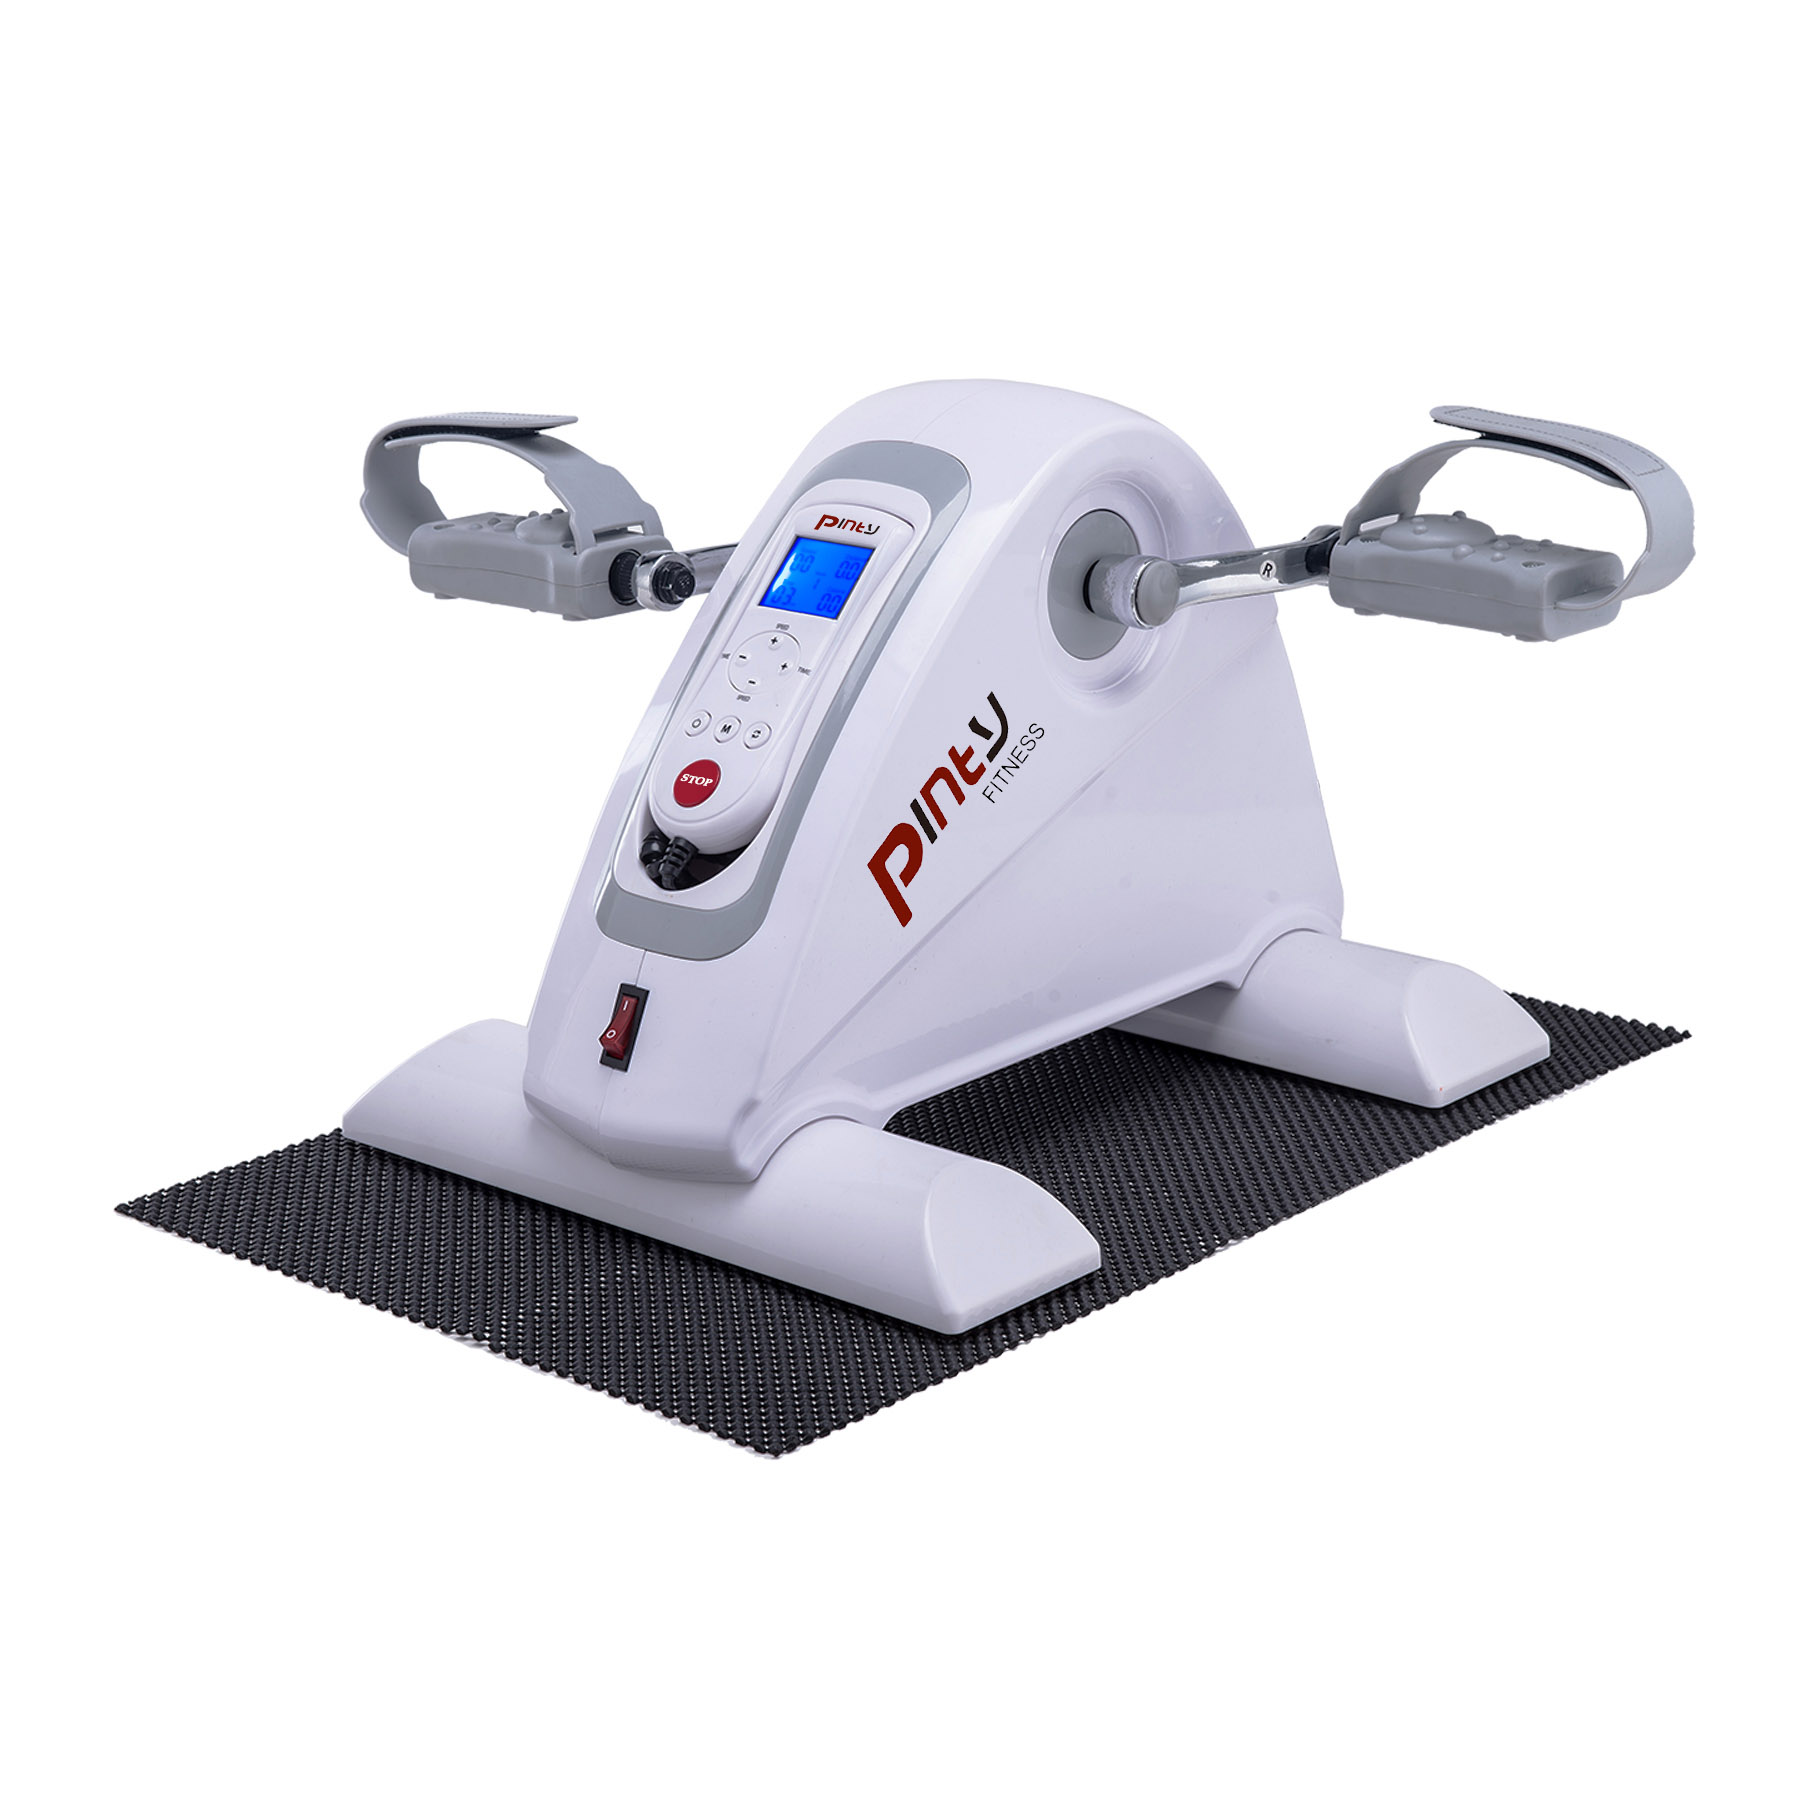 Pinty Motorized Mini Electric Exercise Bike /Pedal Cycle Rehabilitation White